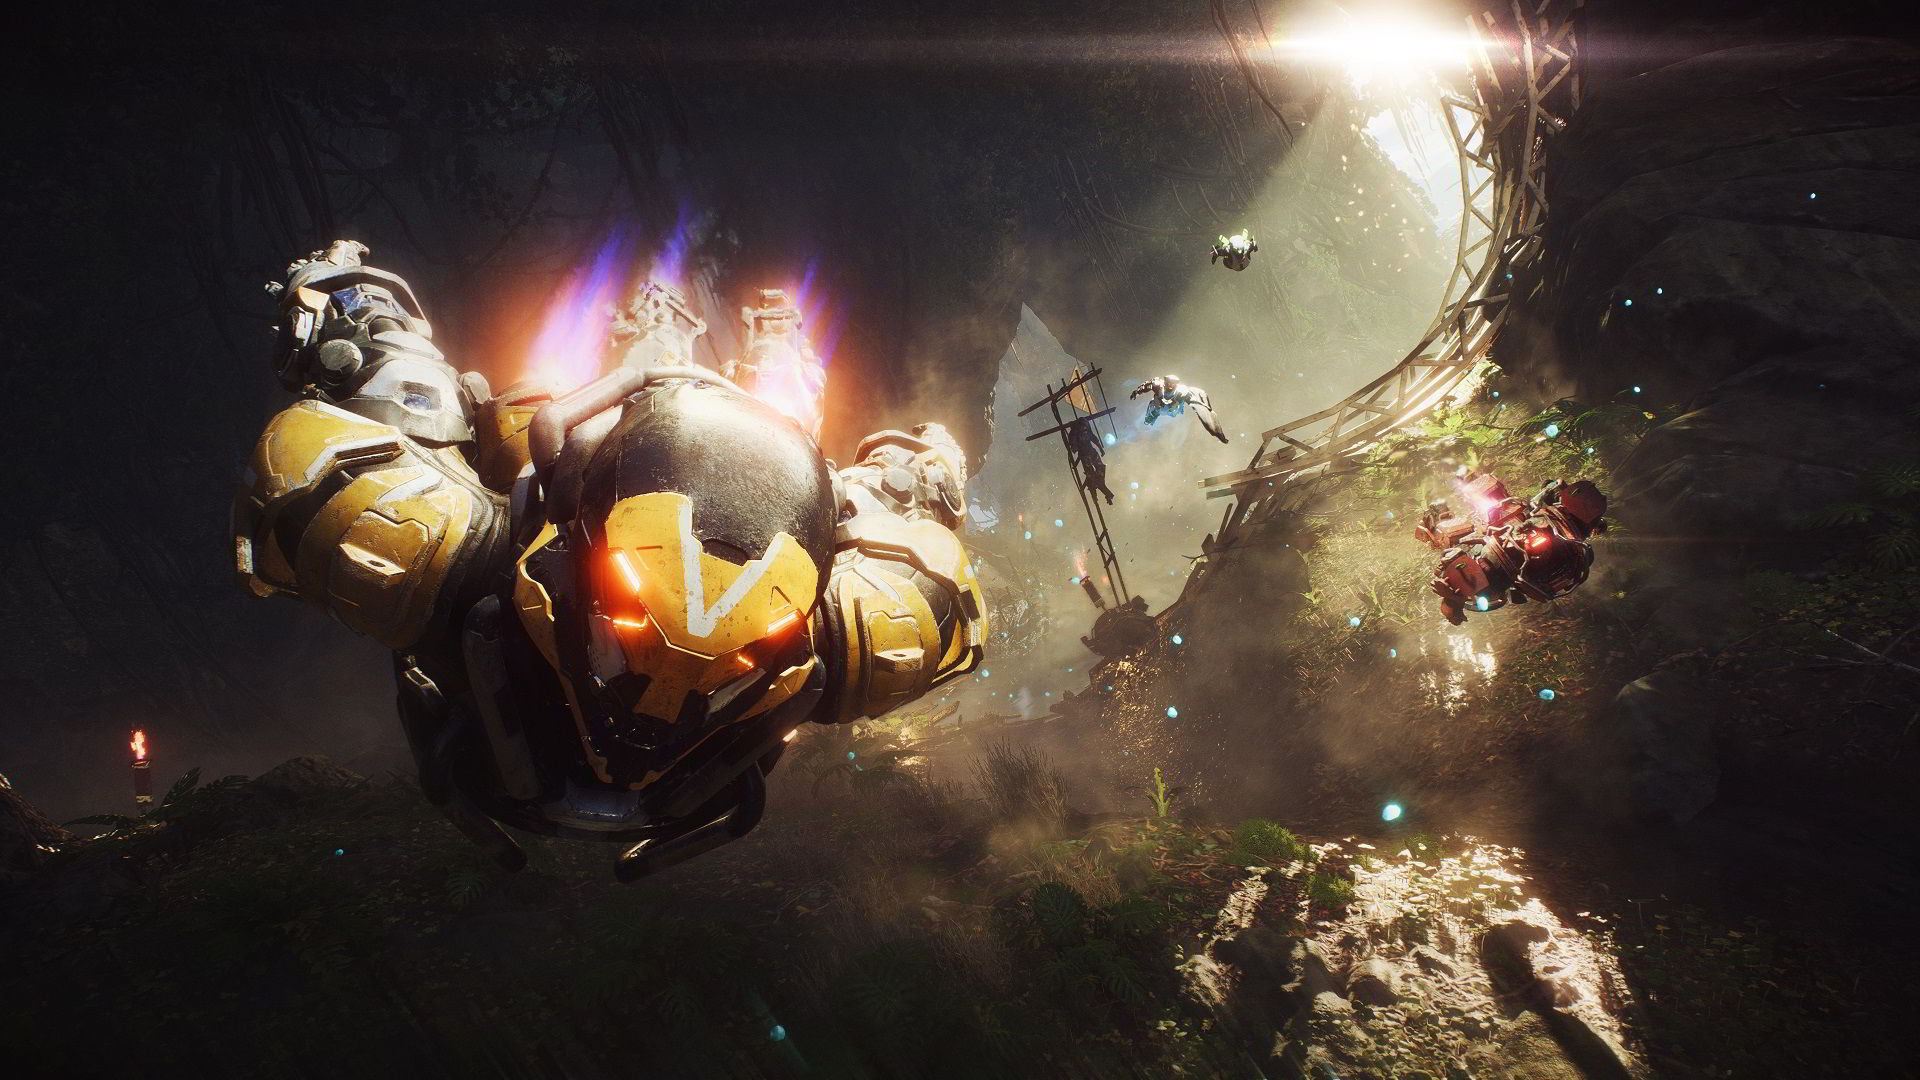 Anthem pronto a diventare free to play, annuncio all'E3 secondo i leak